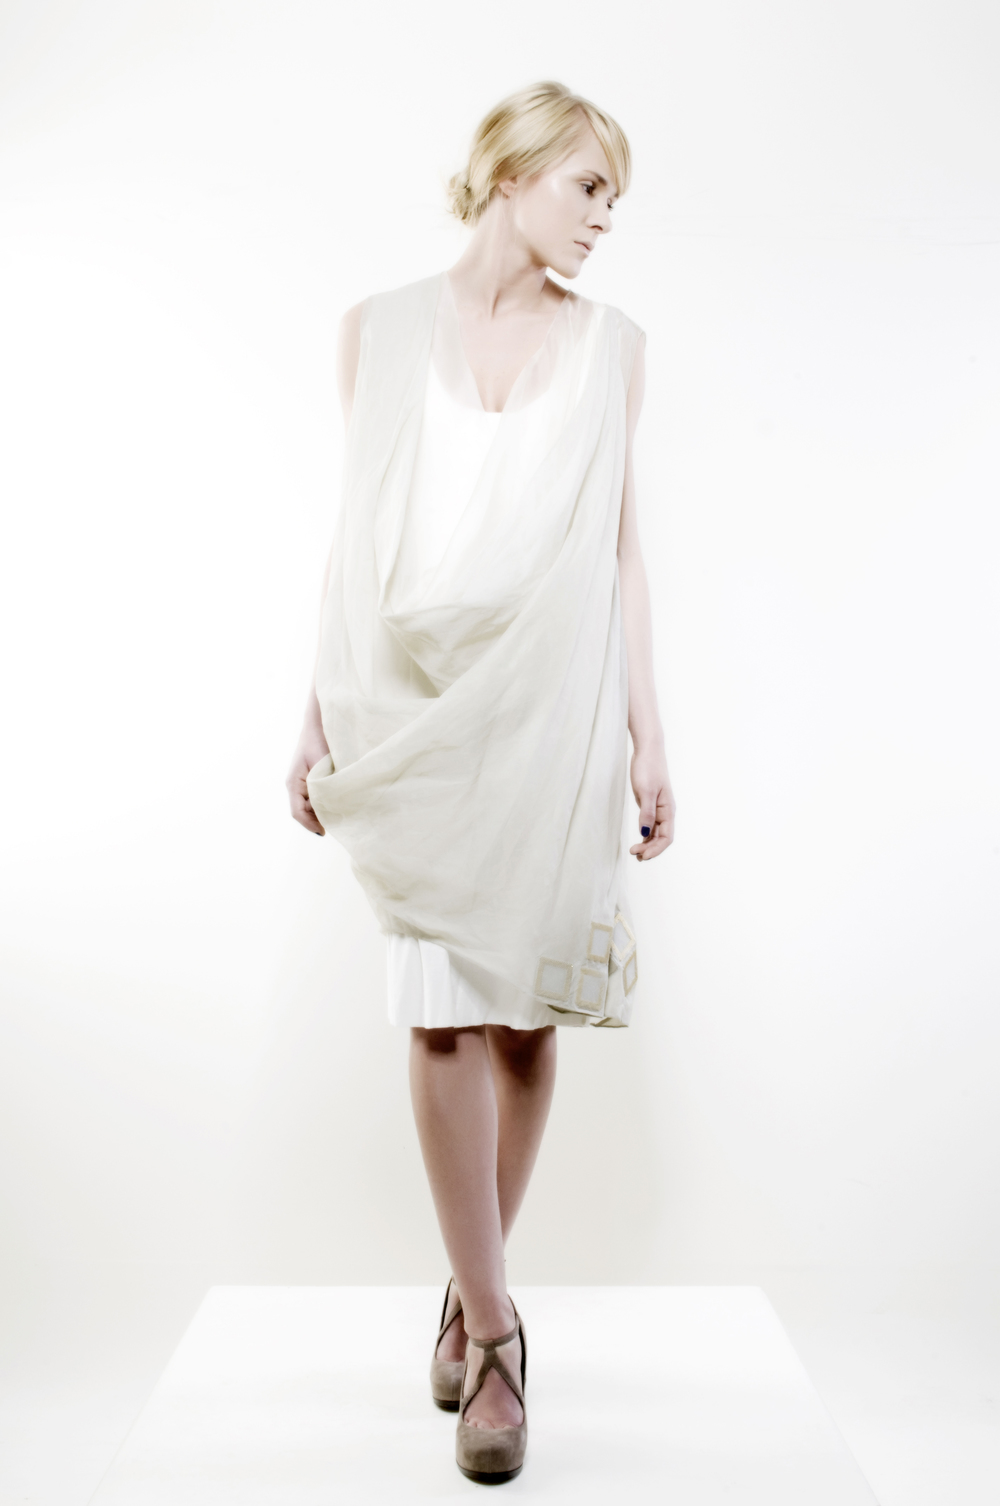 outfit-2b-Gravity-and-Levitation-Spring-Summer-Collection-Isabel-Wong-Light-Green-Organdy-Gold-CPU-draped-dress.jpg